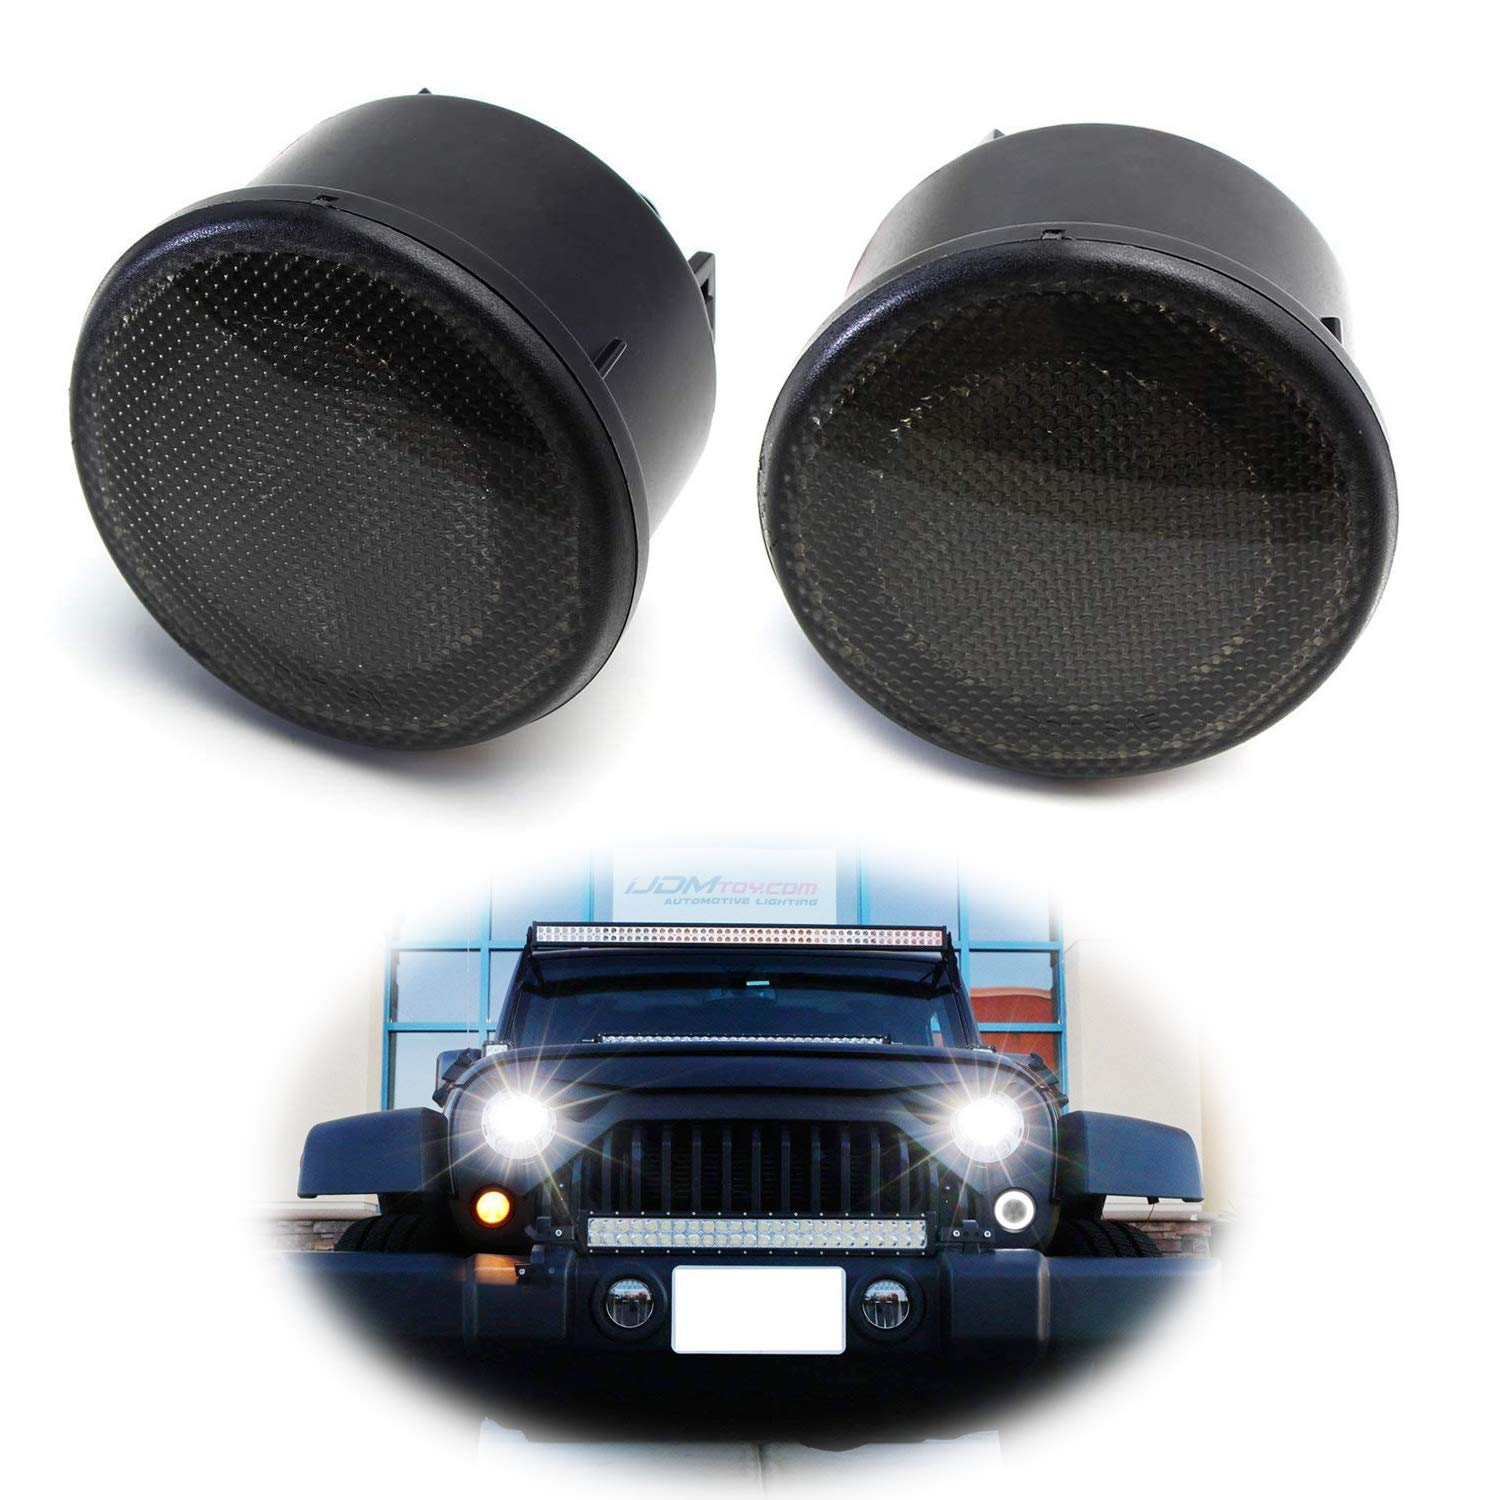 iJDMTOY (2) Smoked Lens LED DRL Turn Signal Assembly Compatible For 2007-17 Jeep Wrangler (White LED Halo Ring as Daytime Running Lights & Amber LED Center Light as Turn Signals) iJDMTOY Auto Accessories Front Bumper Blinker Signal Light Assy